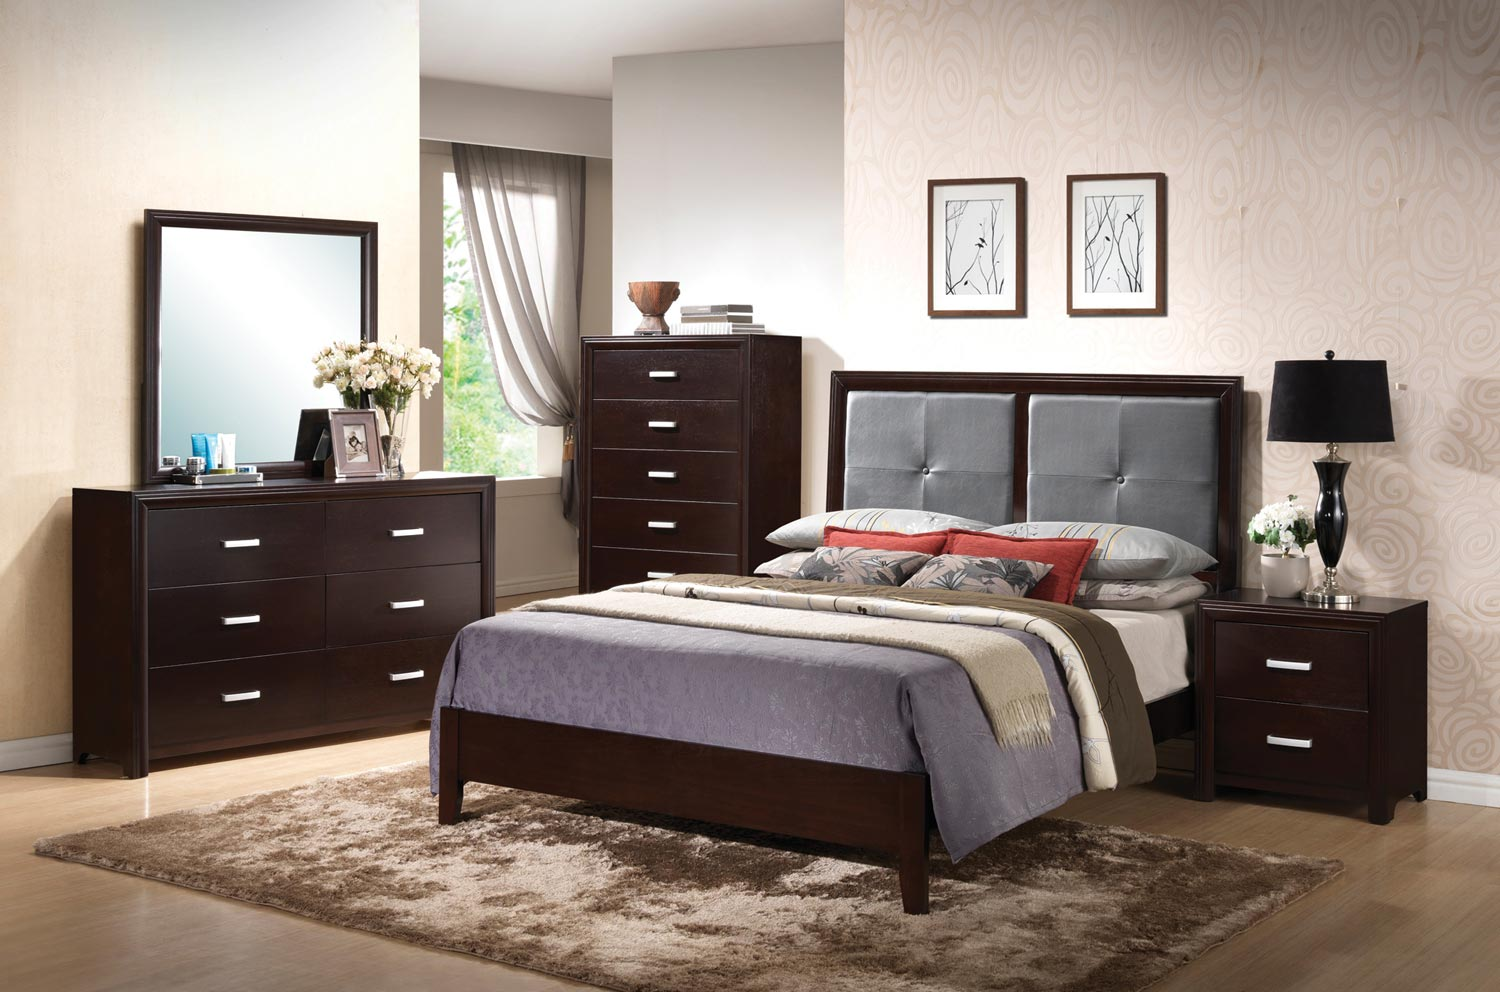 Coaster Andreas Fabric Upholstered Low Profile Bedroom Set - Cappuccino